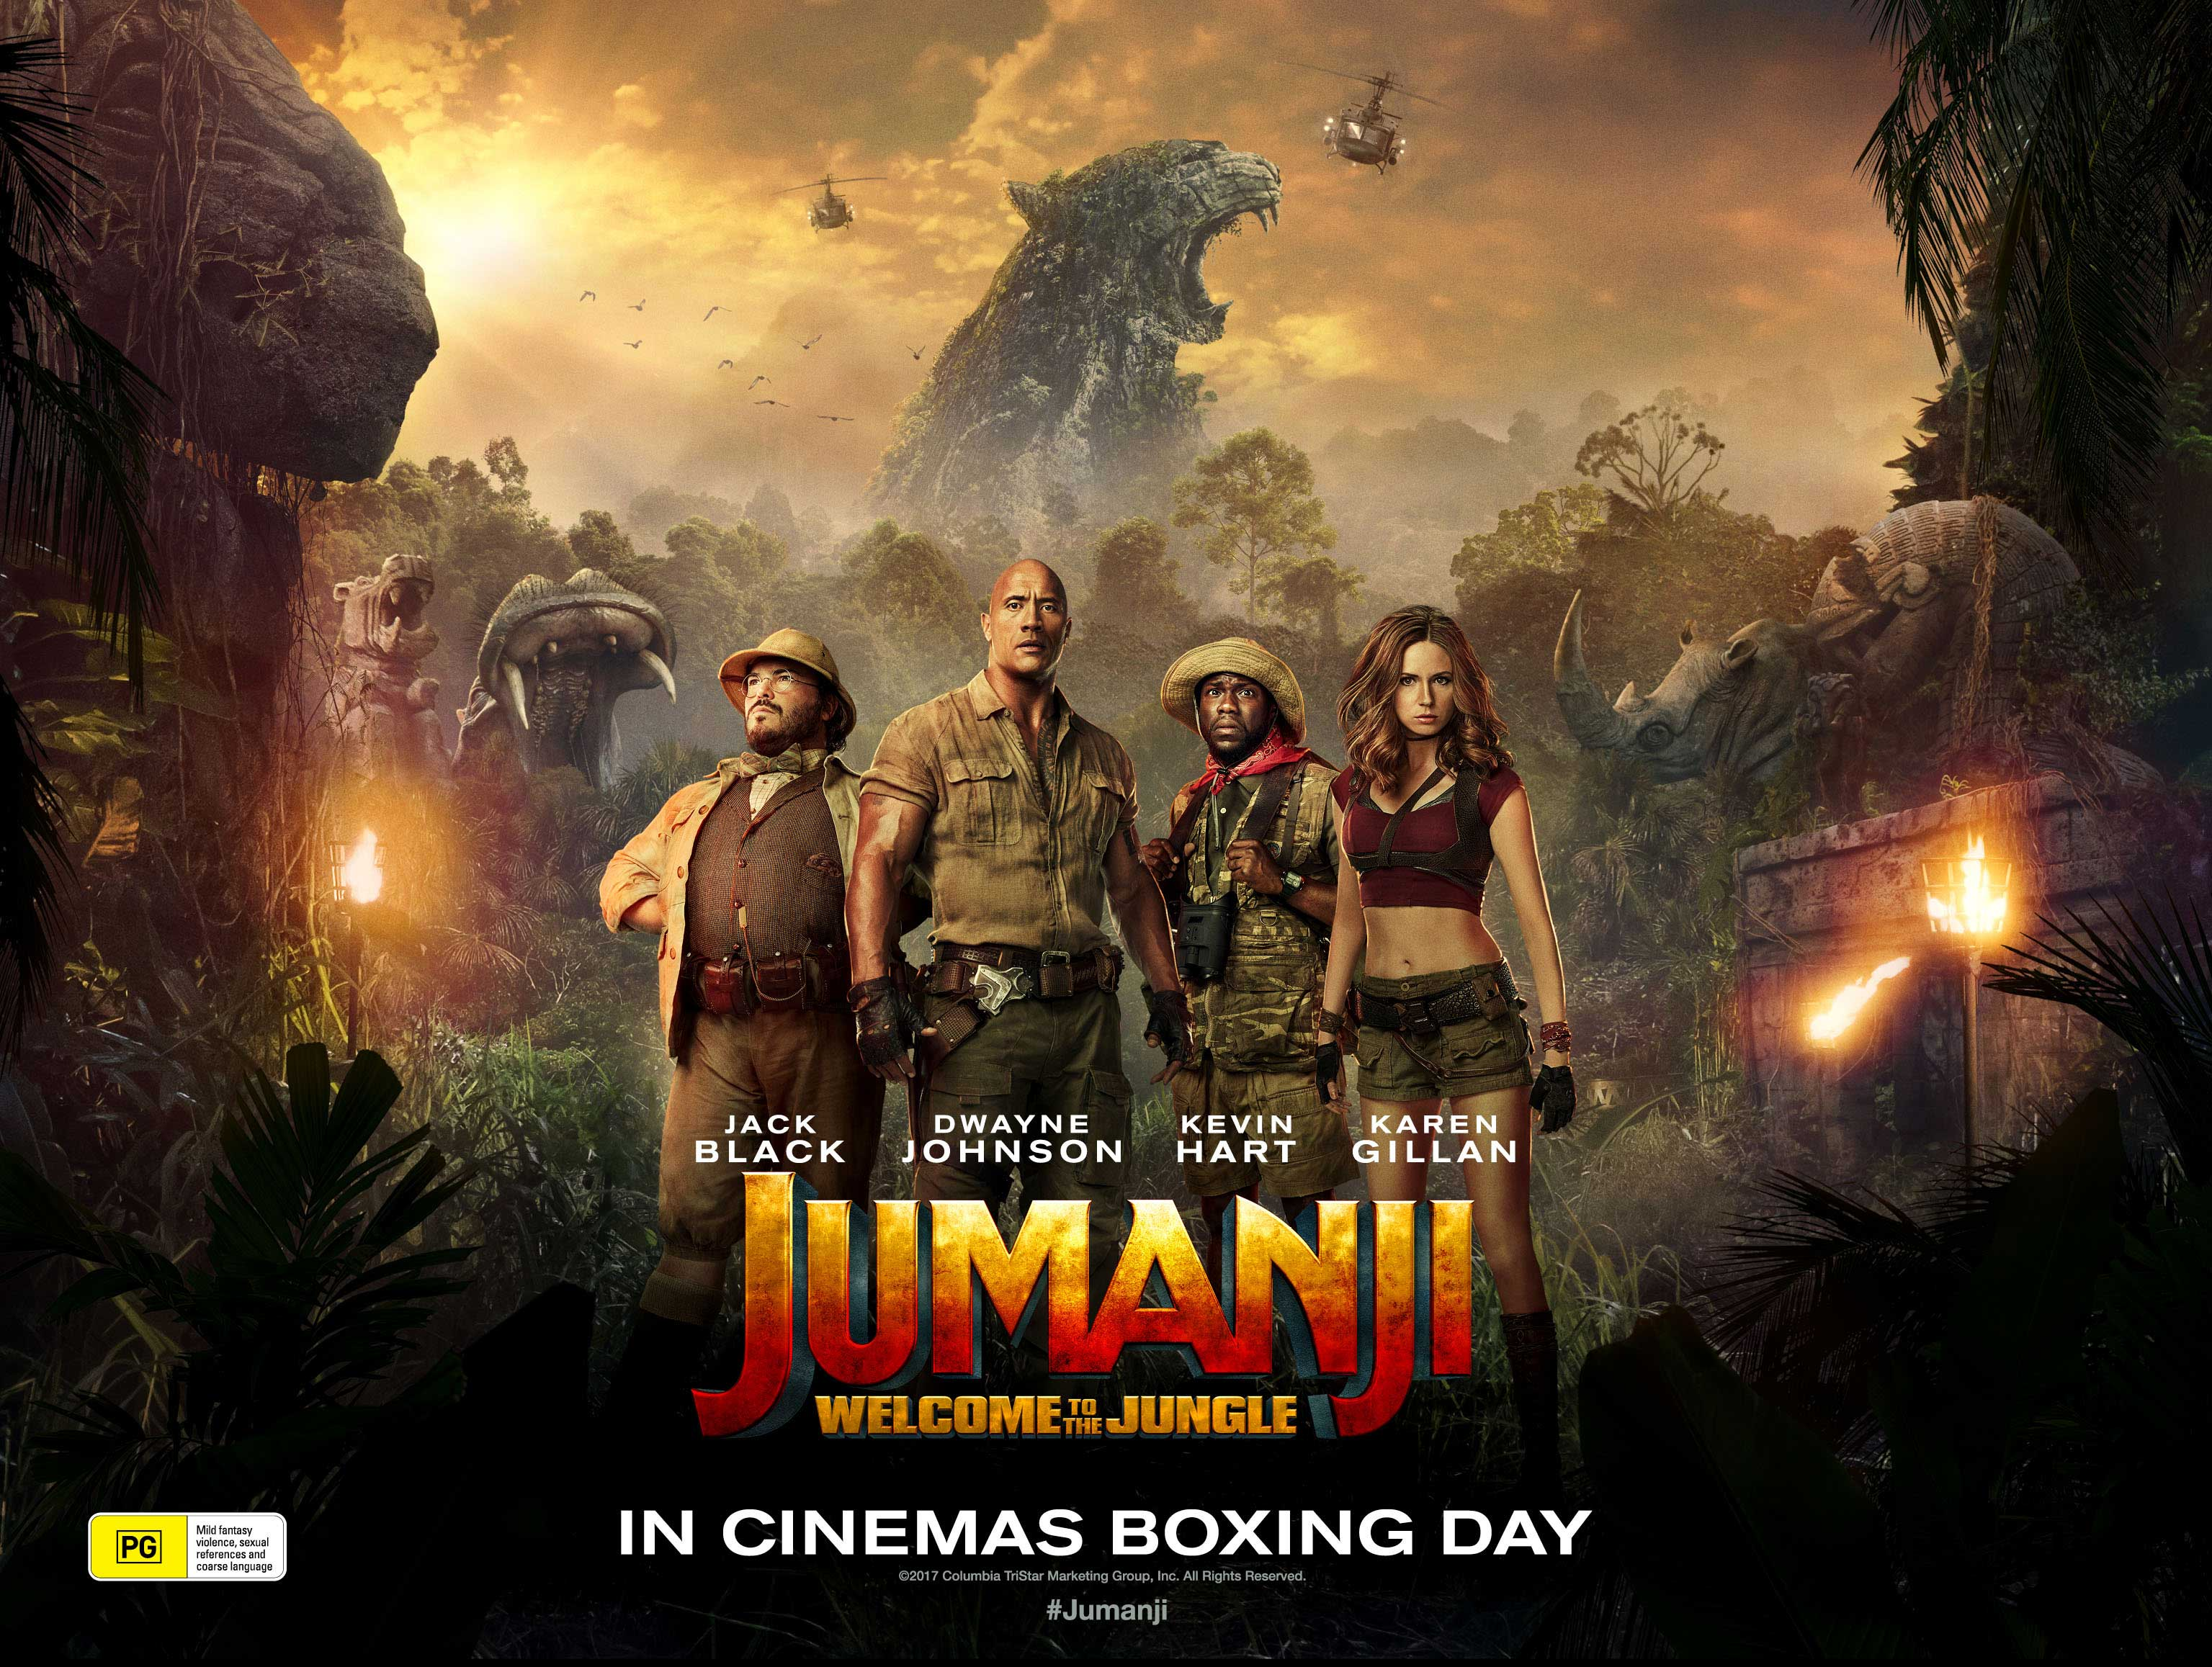 Jumanji Wallpaper Image Group 30 3071x2315